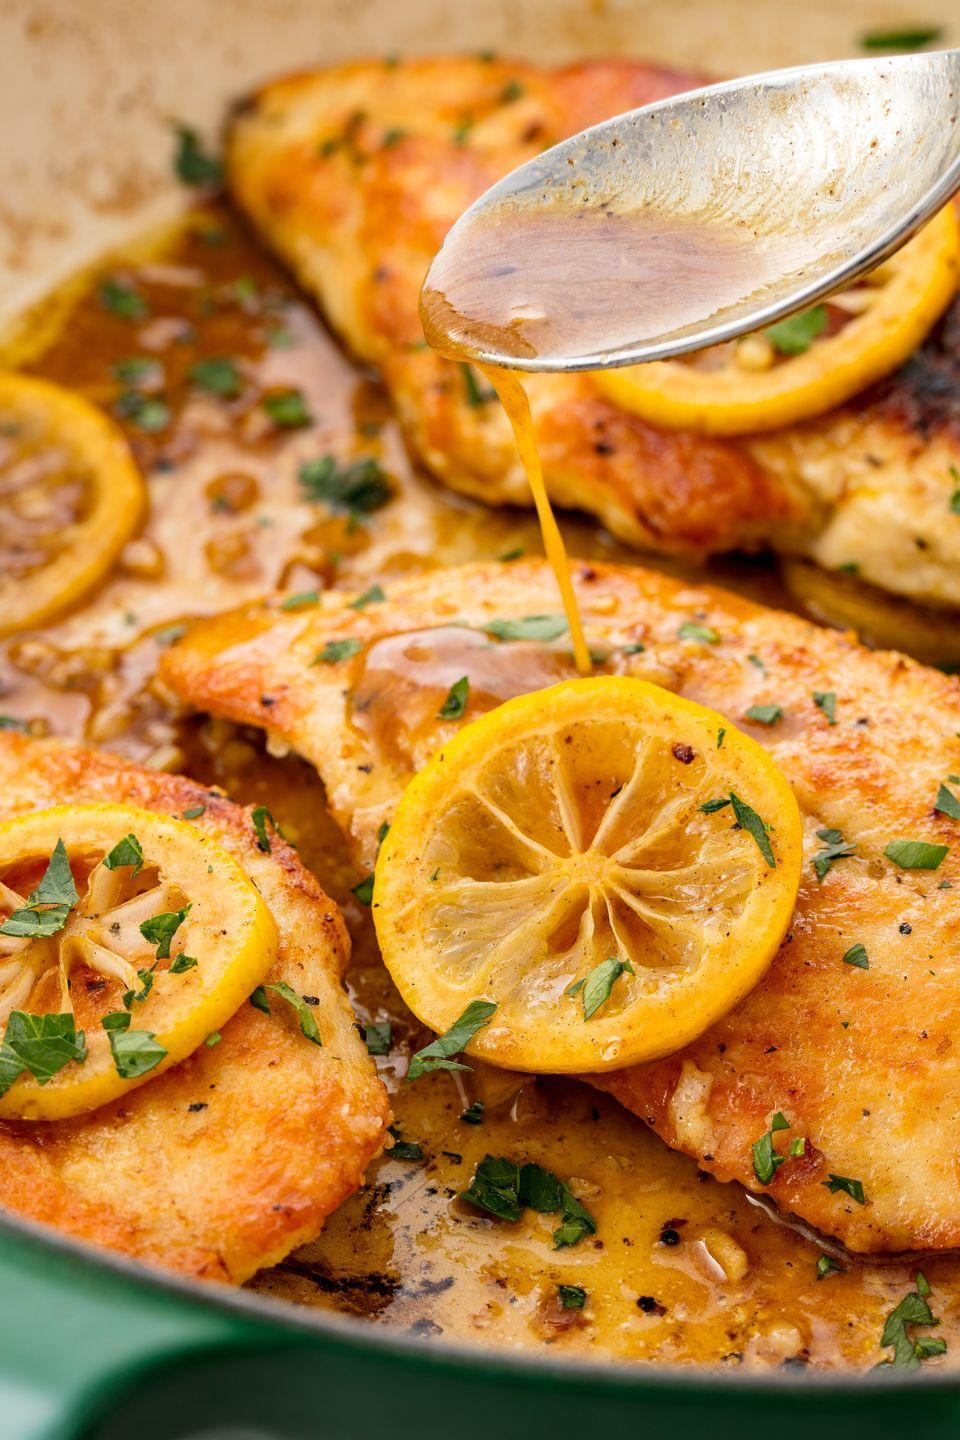 """<p>This lemon pepper chicken makes chicken exciting again.</p><p>Get the recipe from <a href=""""https://www.delish.com/cooking/recipe-ideas/recipes/a55218/lemon-pepper-baked-chicken-breast-recipe/"""" rel=""""nofollow noopener"""" target=""""_blank"""" data-ylk=""""slk:Delish"""" class=""""link rapid-noclick-resp"""">Delish</a>.</p>"""